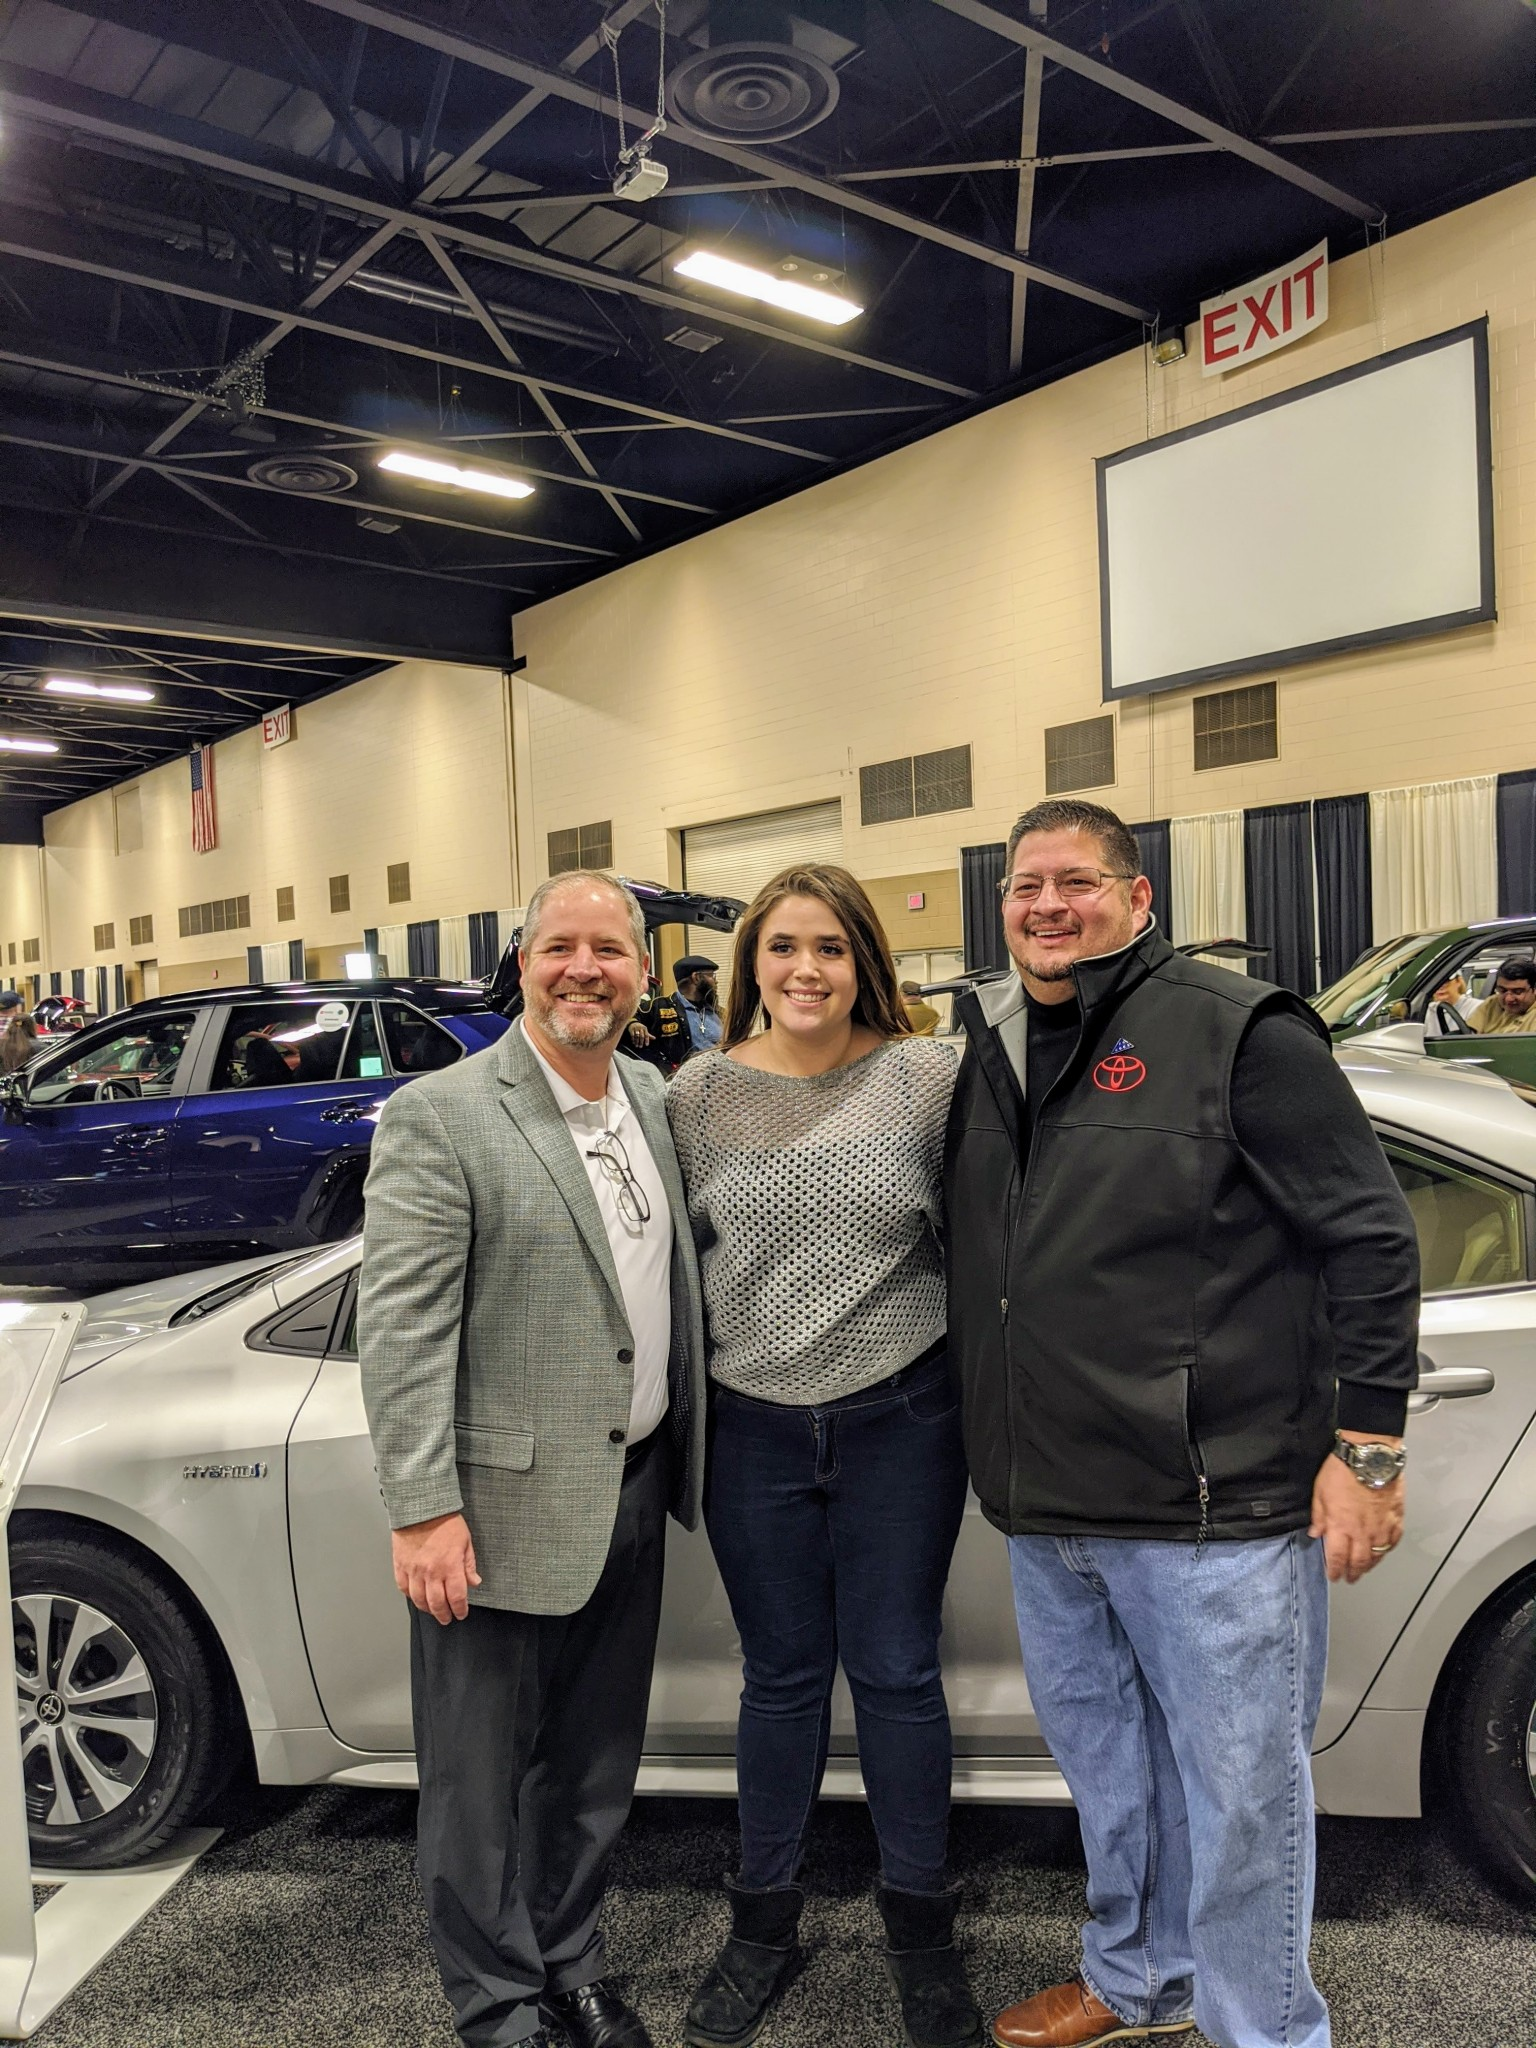 Left to right, Mike Dunphy of Thayer Toyota; Marissa Martinez, winner of the Toledo Auto Show giveaway of a Toyota Corolla LE two-year lease and Vinnie Schiavone, of Jim White Toyota. (Submitted photo)